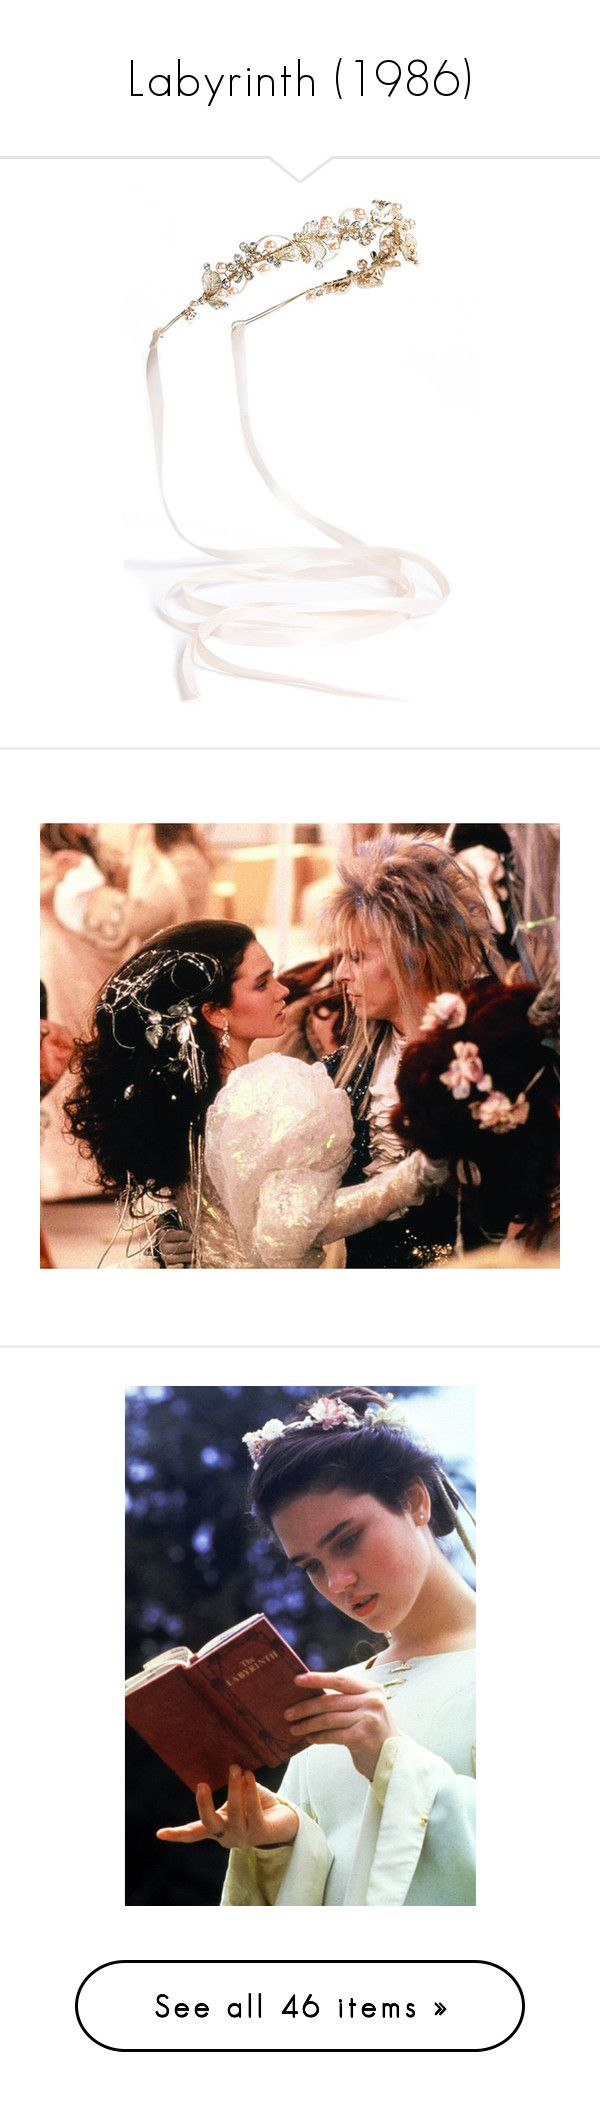 """""""Labyrinth (1986)"""" by namelessginger ❤ liked on Polyvore featuring accessories, hair accessories, hair, blush, beaded hair accessories, floral headwrap, beaded headwrap, hair band accessories, beaded headband and labyrinth"""